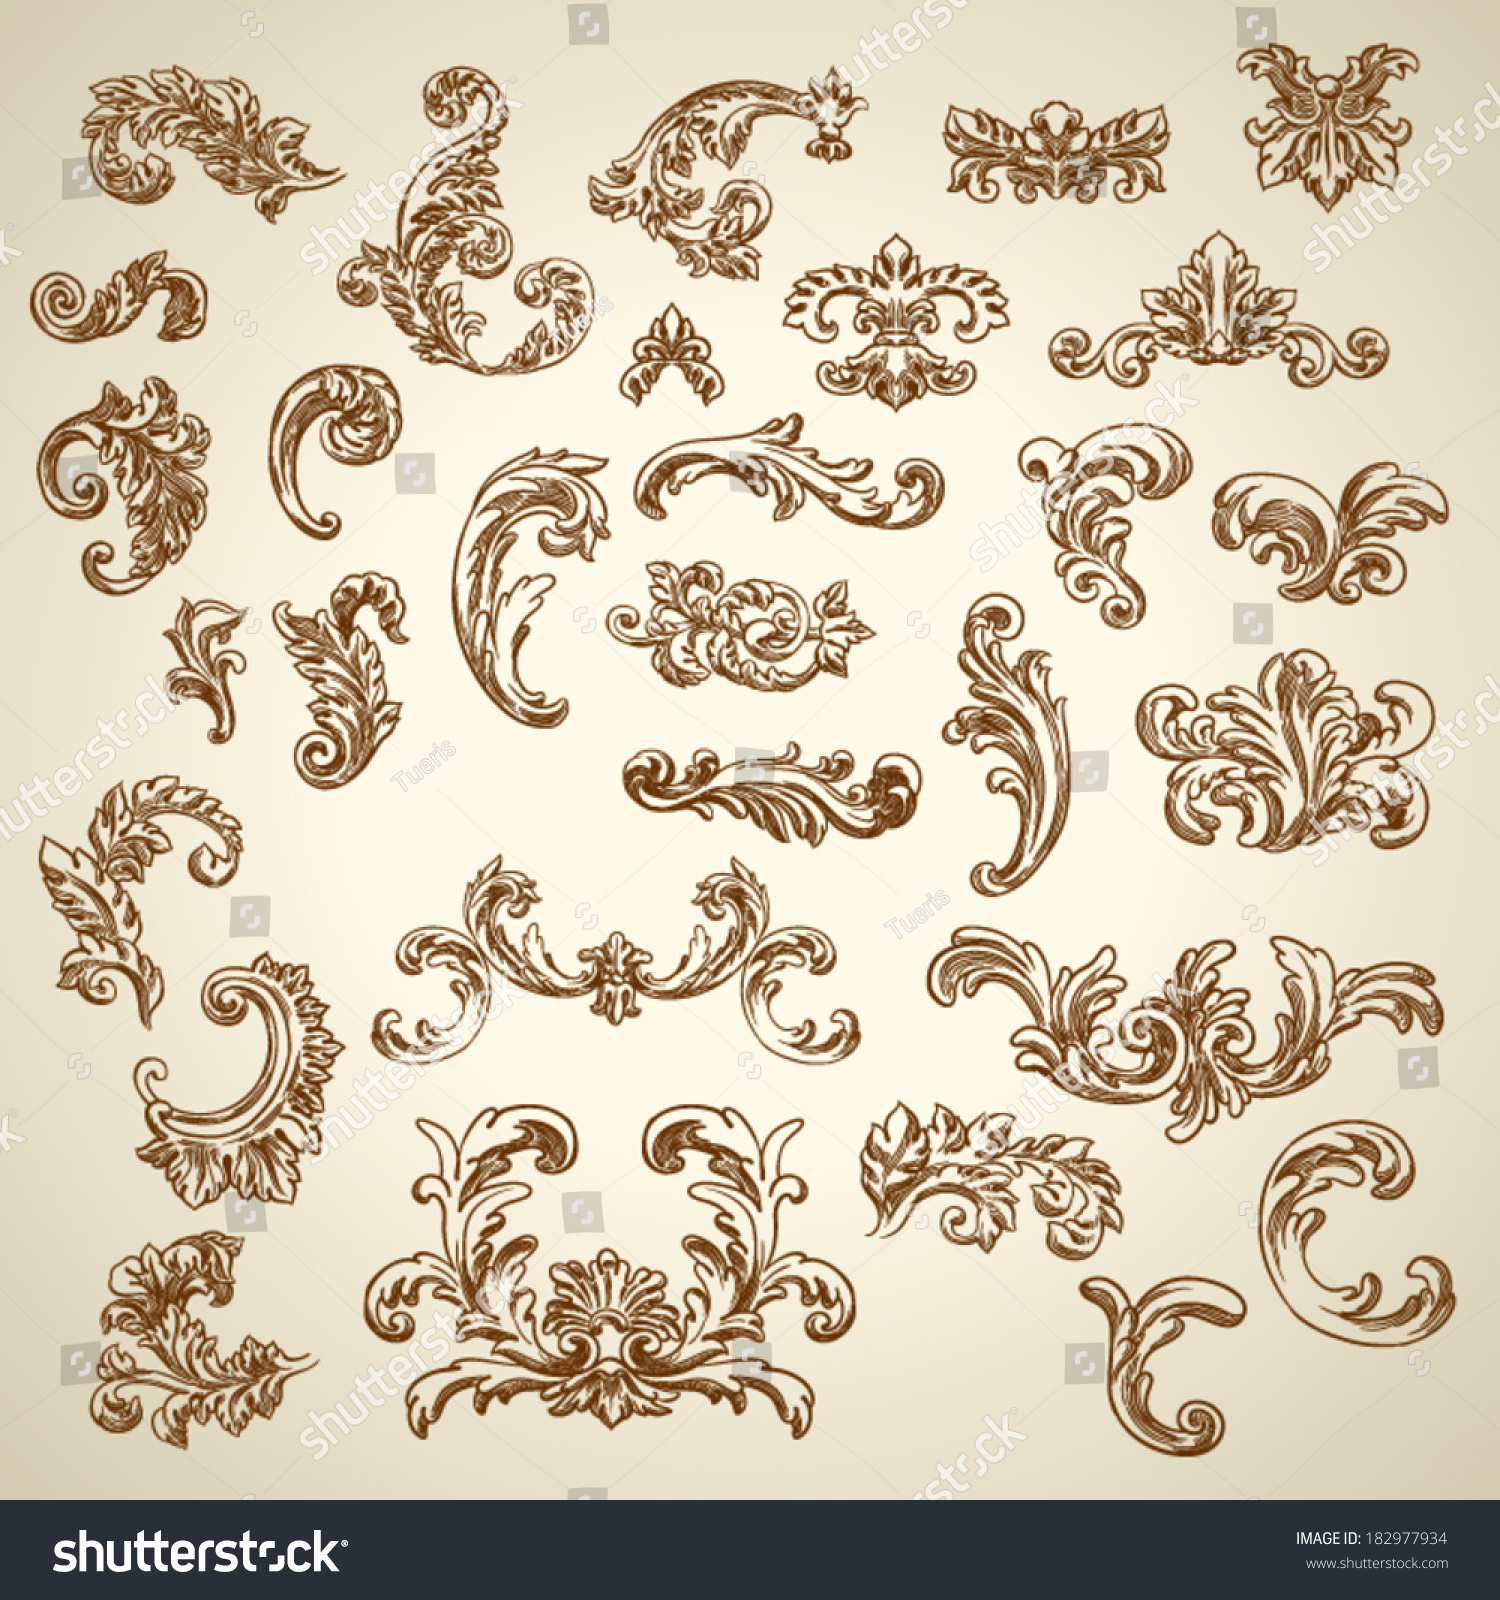 Antique Scroll Design: Set Vector Vintage Baroque Engraving Floral Stock Vector